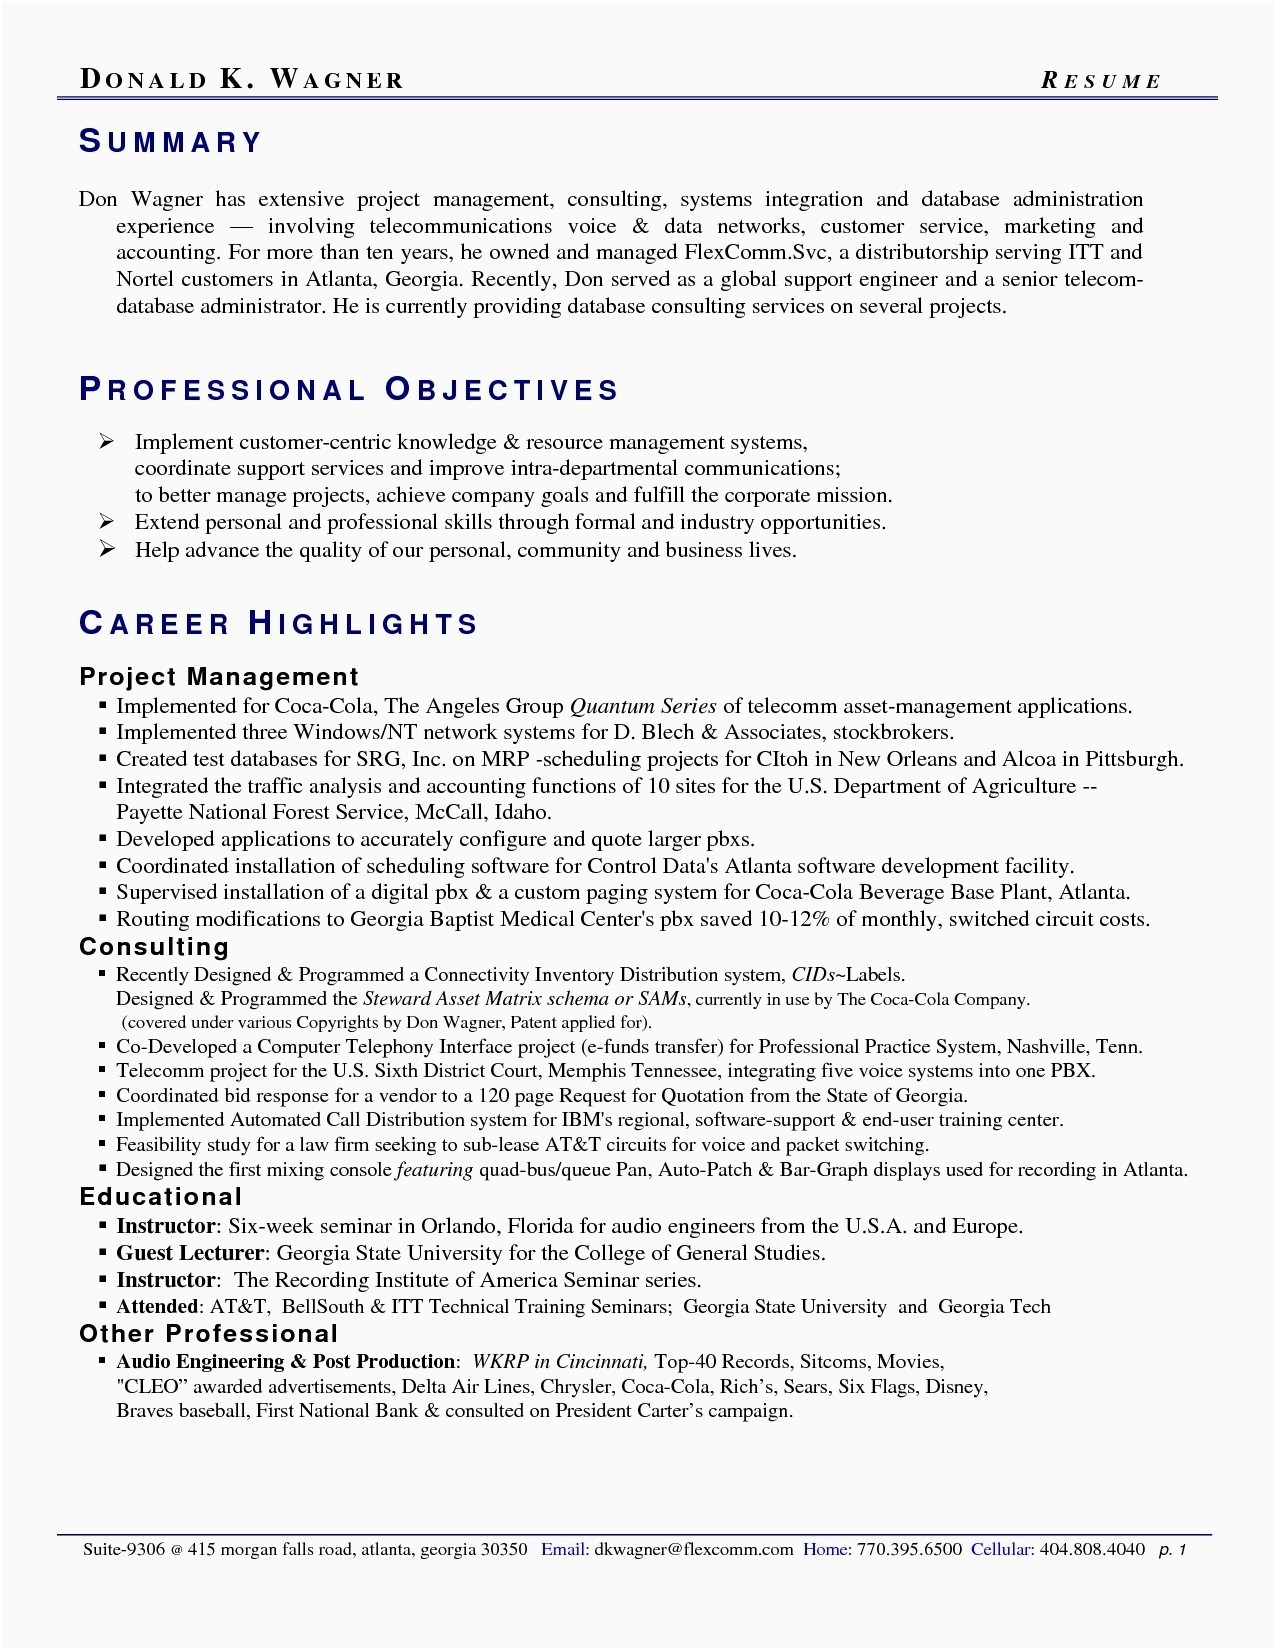 Ats Friendly Resume Template - Resume for Corporate Banking which is Monly Used Resume Insight